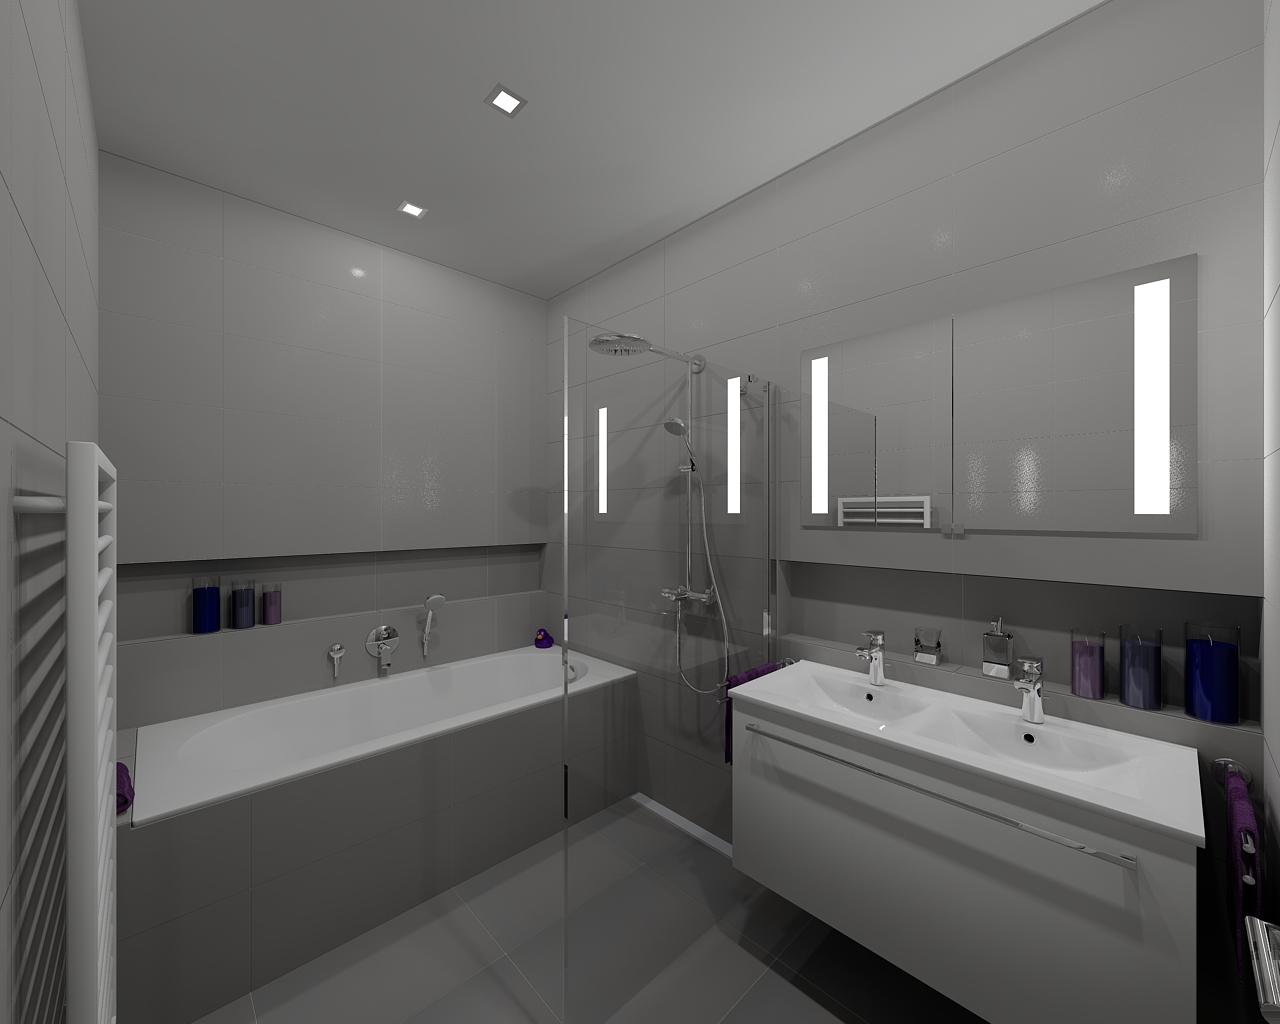 Interior Design White And Gray Modern Kitchen Bath